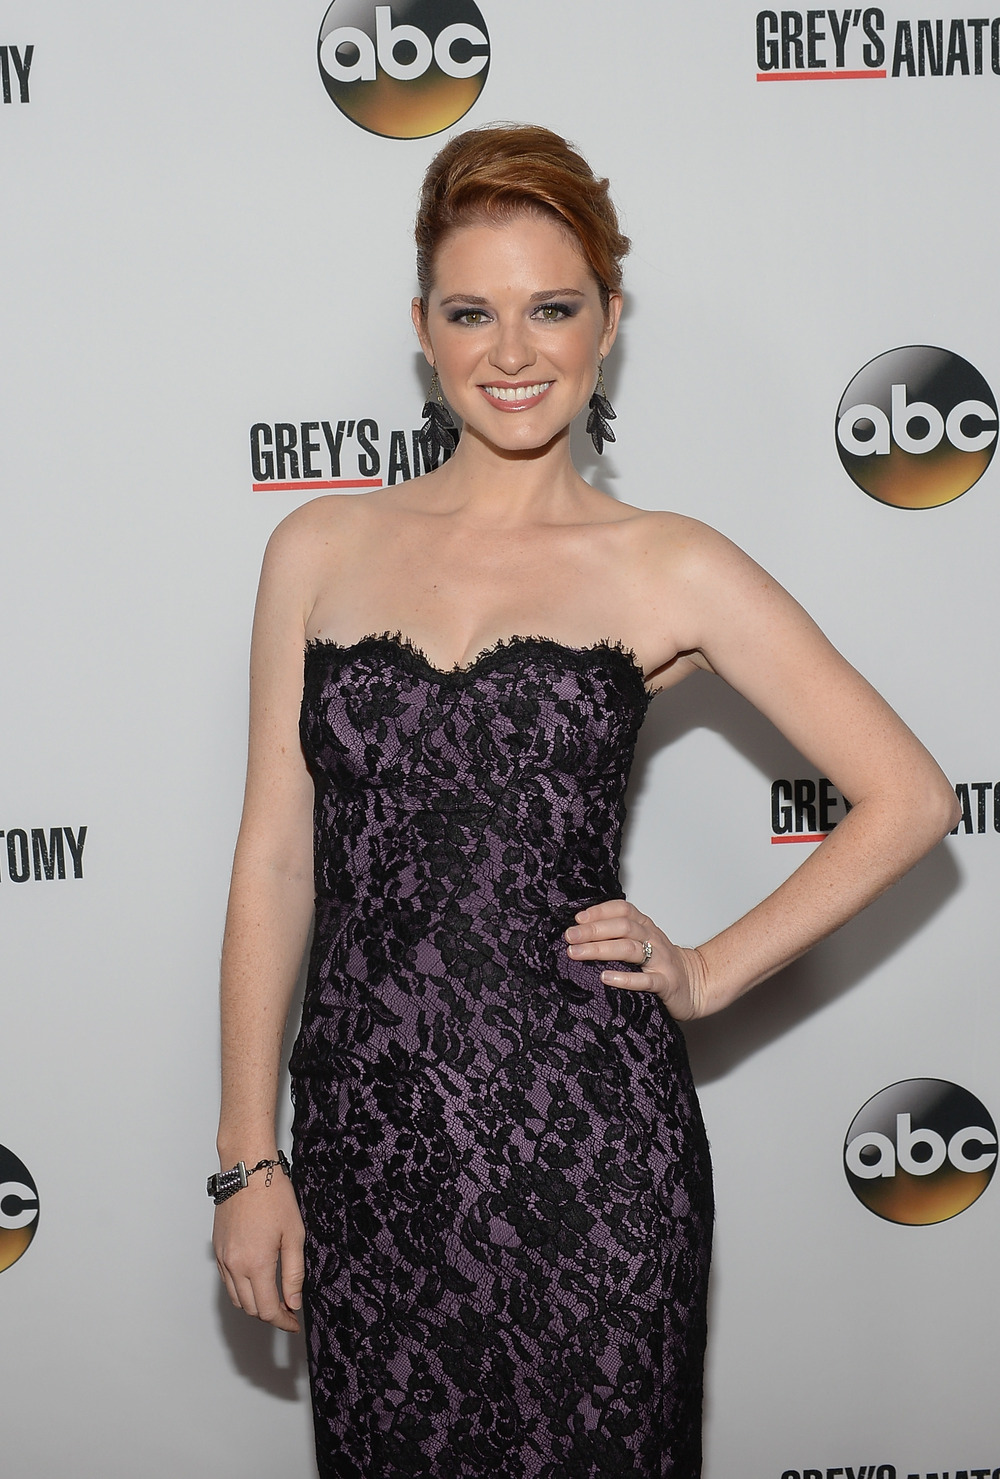 Grey's Anatomy's Sarah Drew Releases Christmas Album With Her Band!